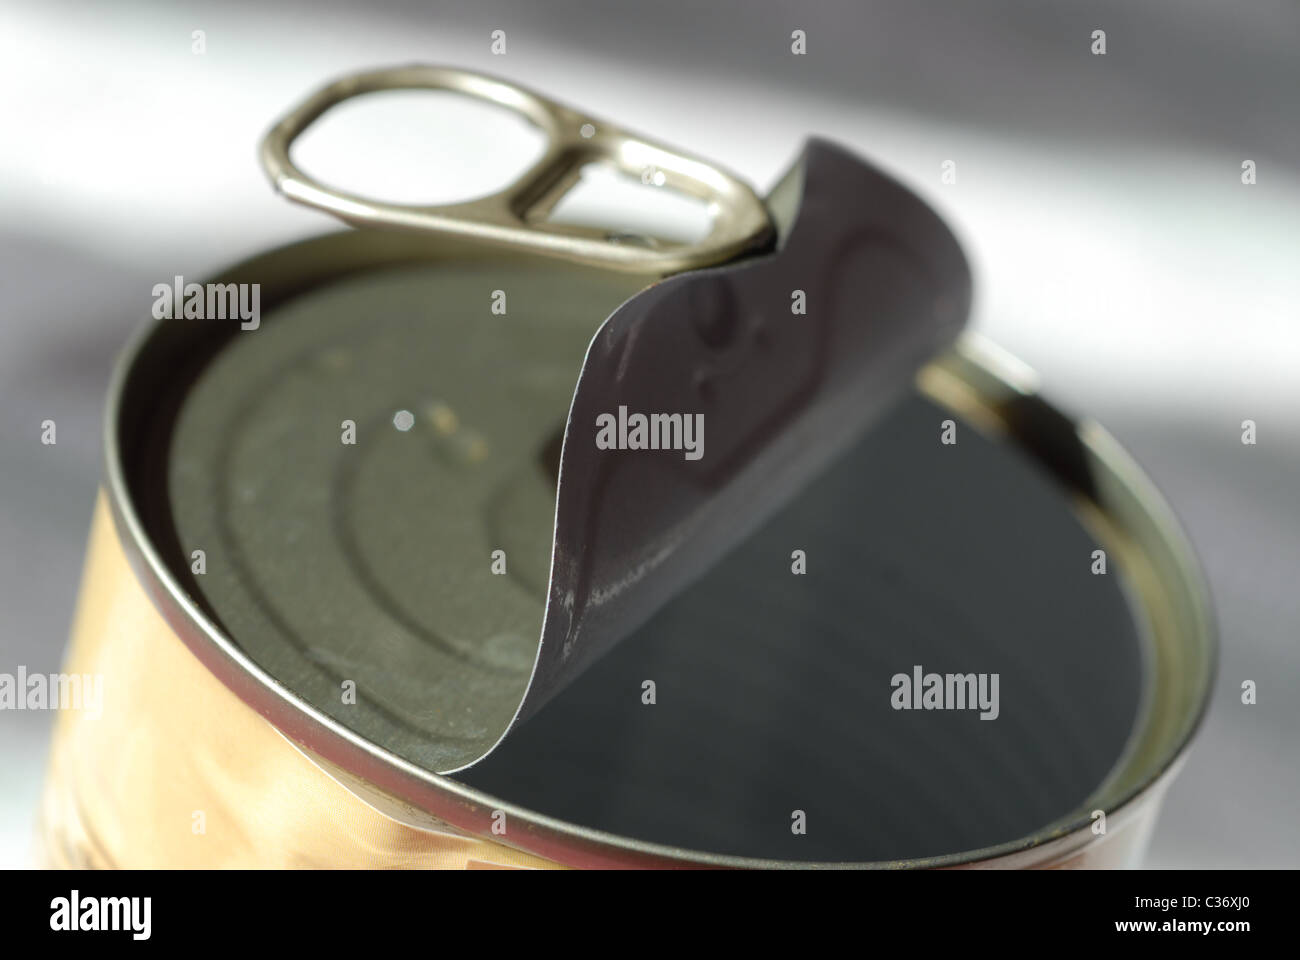 Open can. - Stock Image